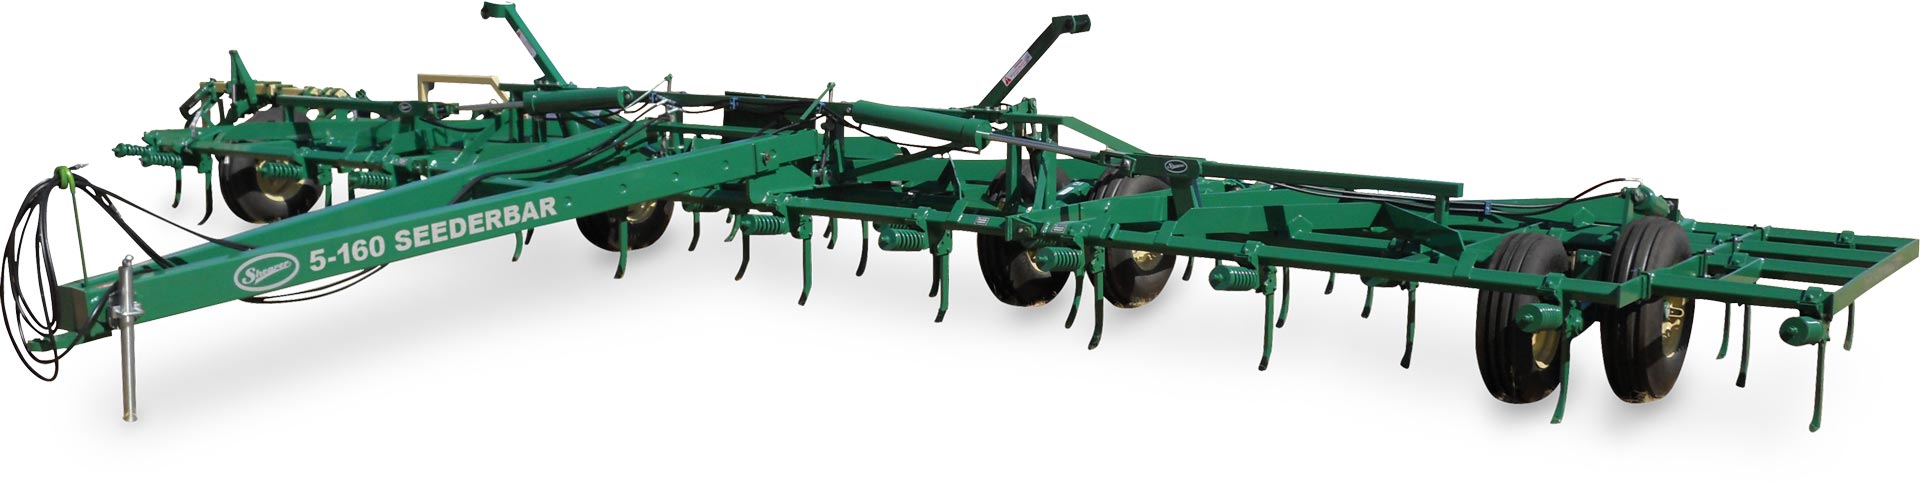 John Shearer 5-160 Seeder Bar